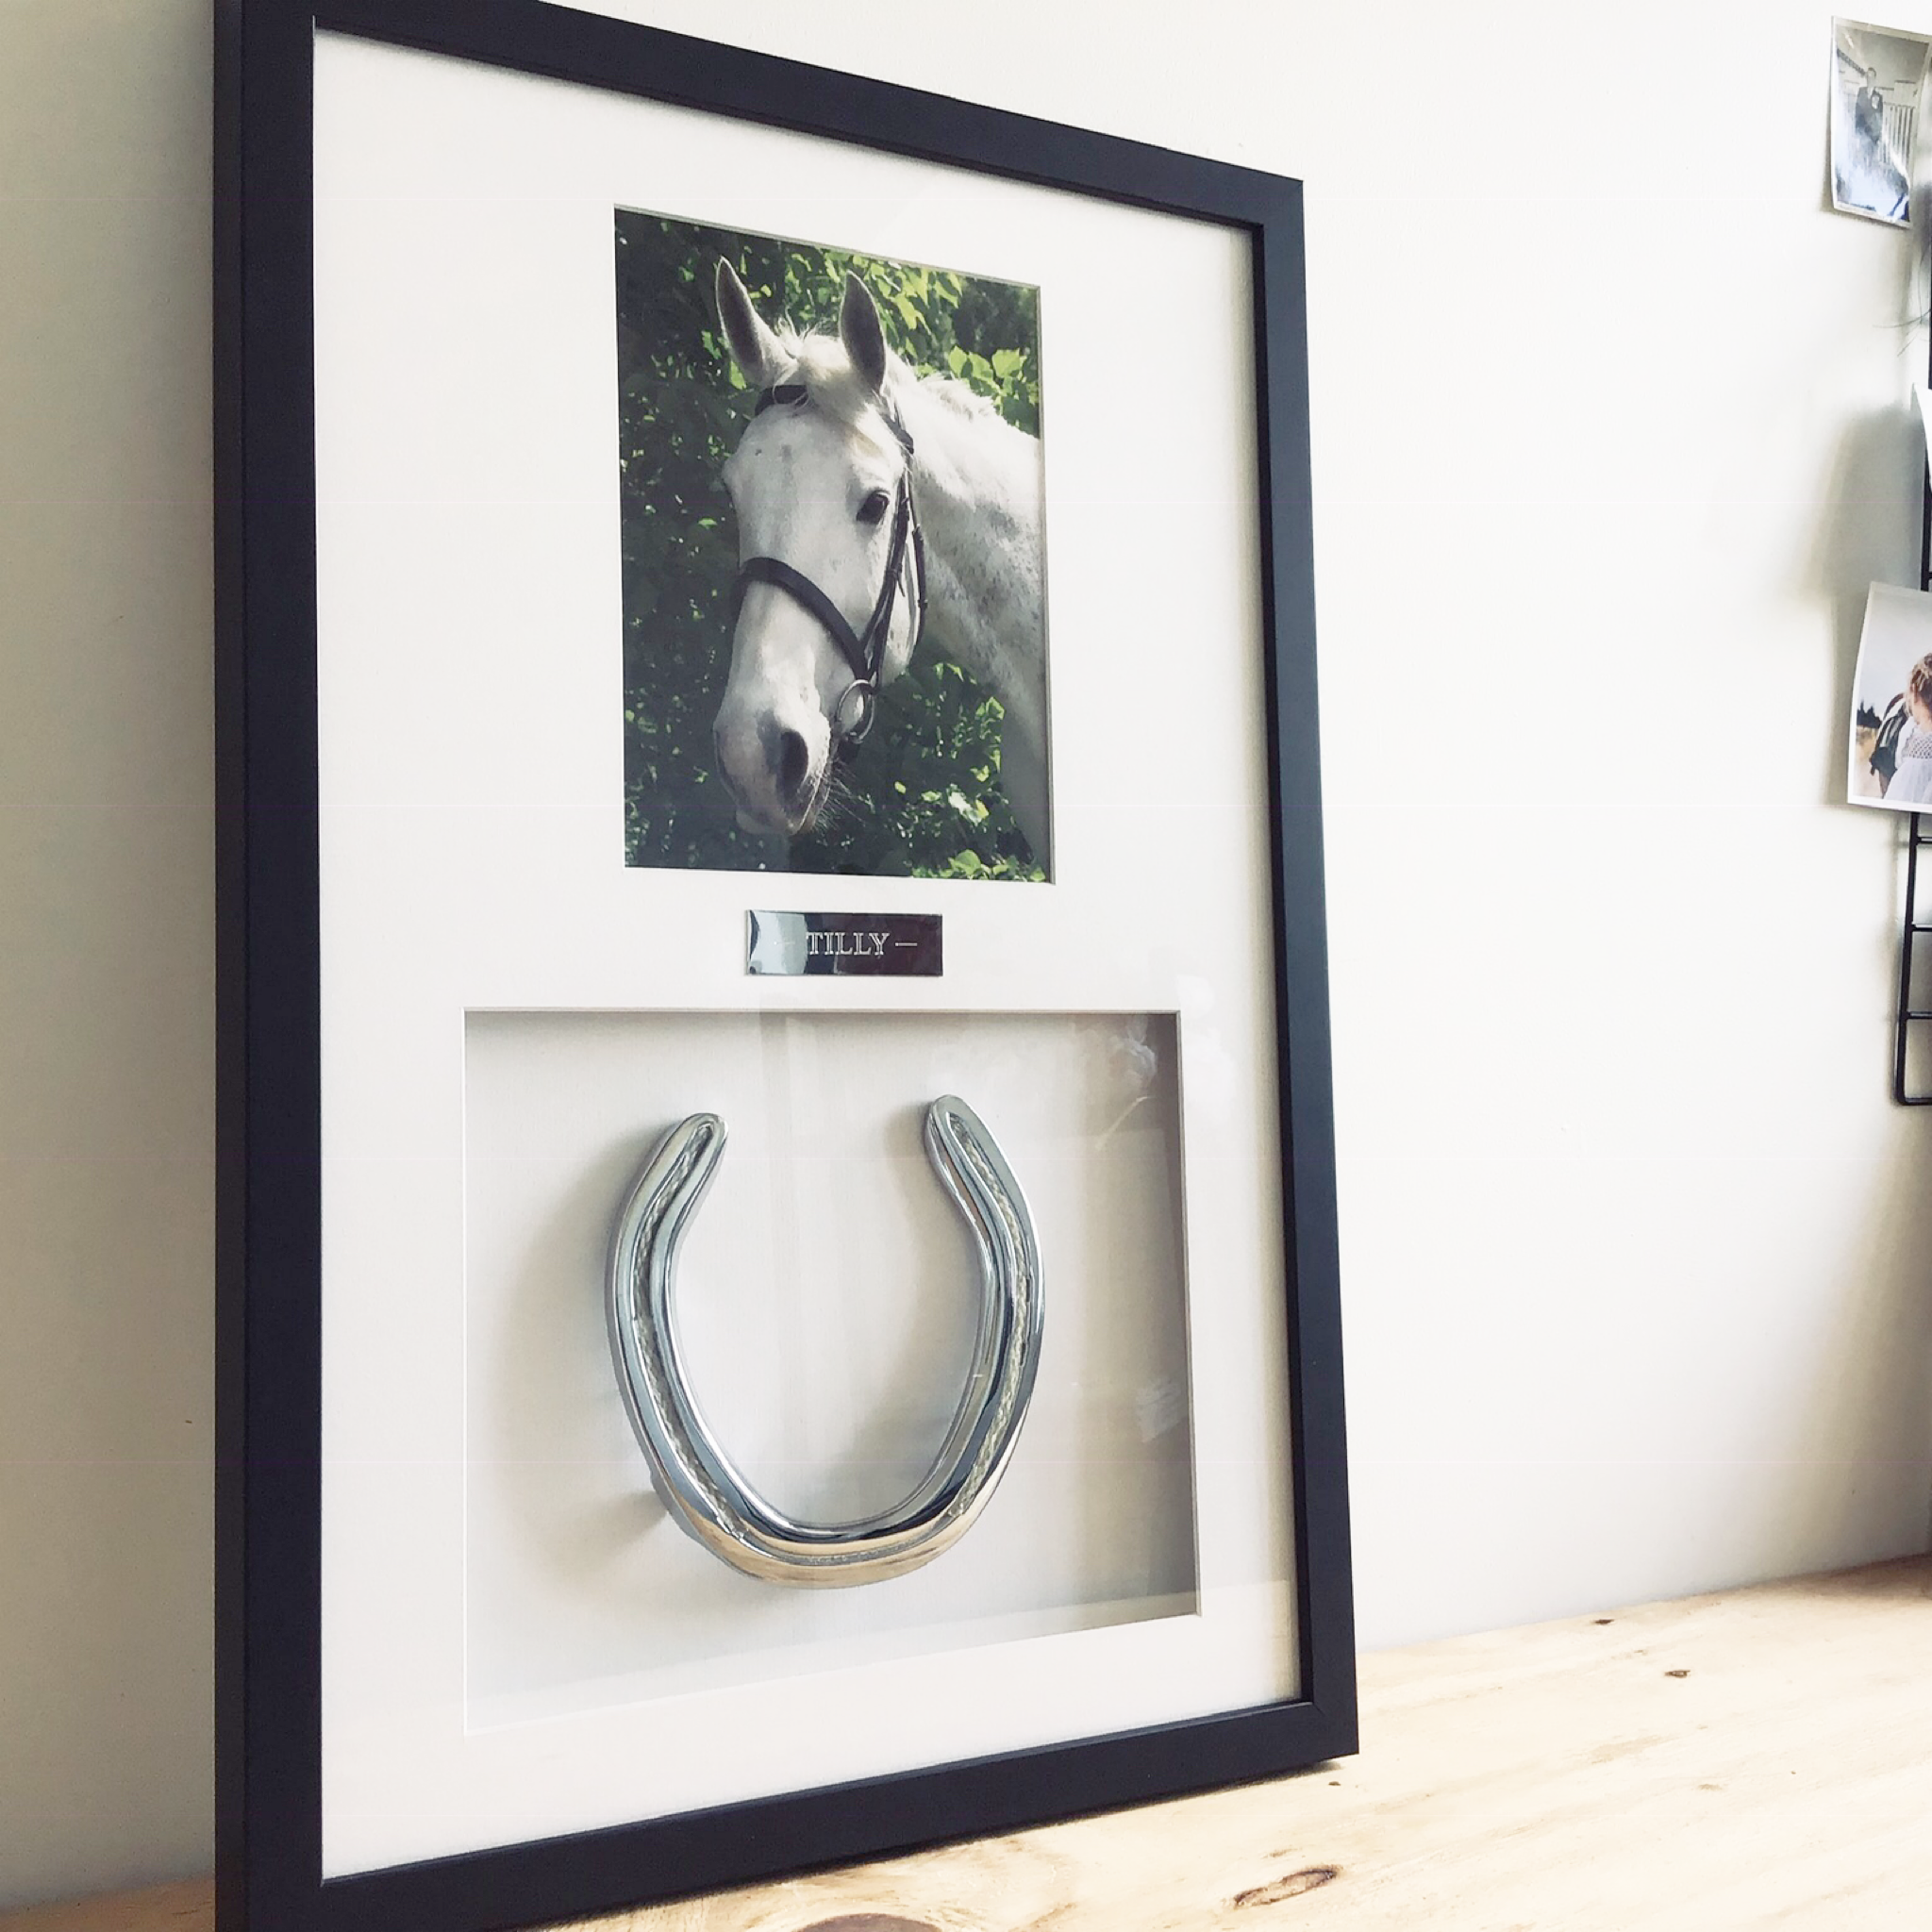 Framed Horseshoe with Horse Hair Braid and Photo - Horseshoe Mementoes